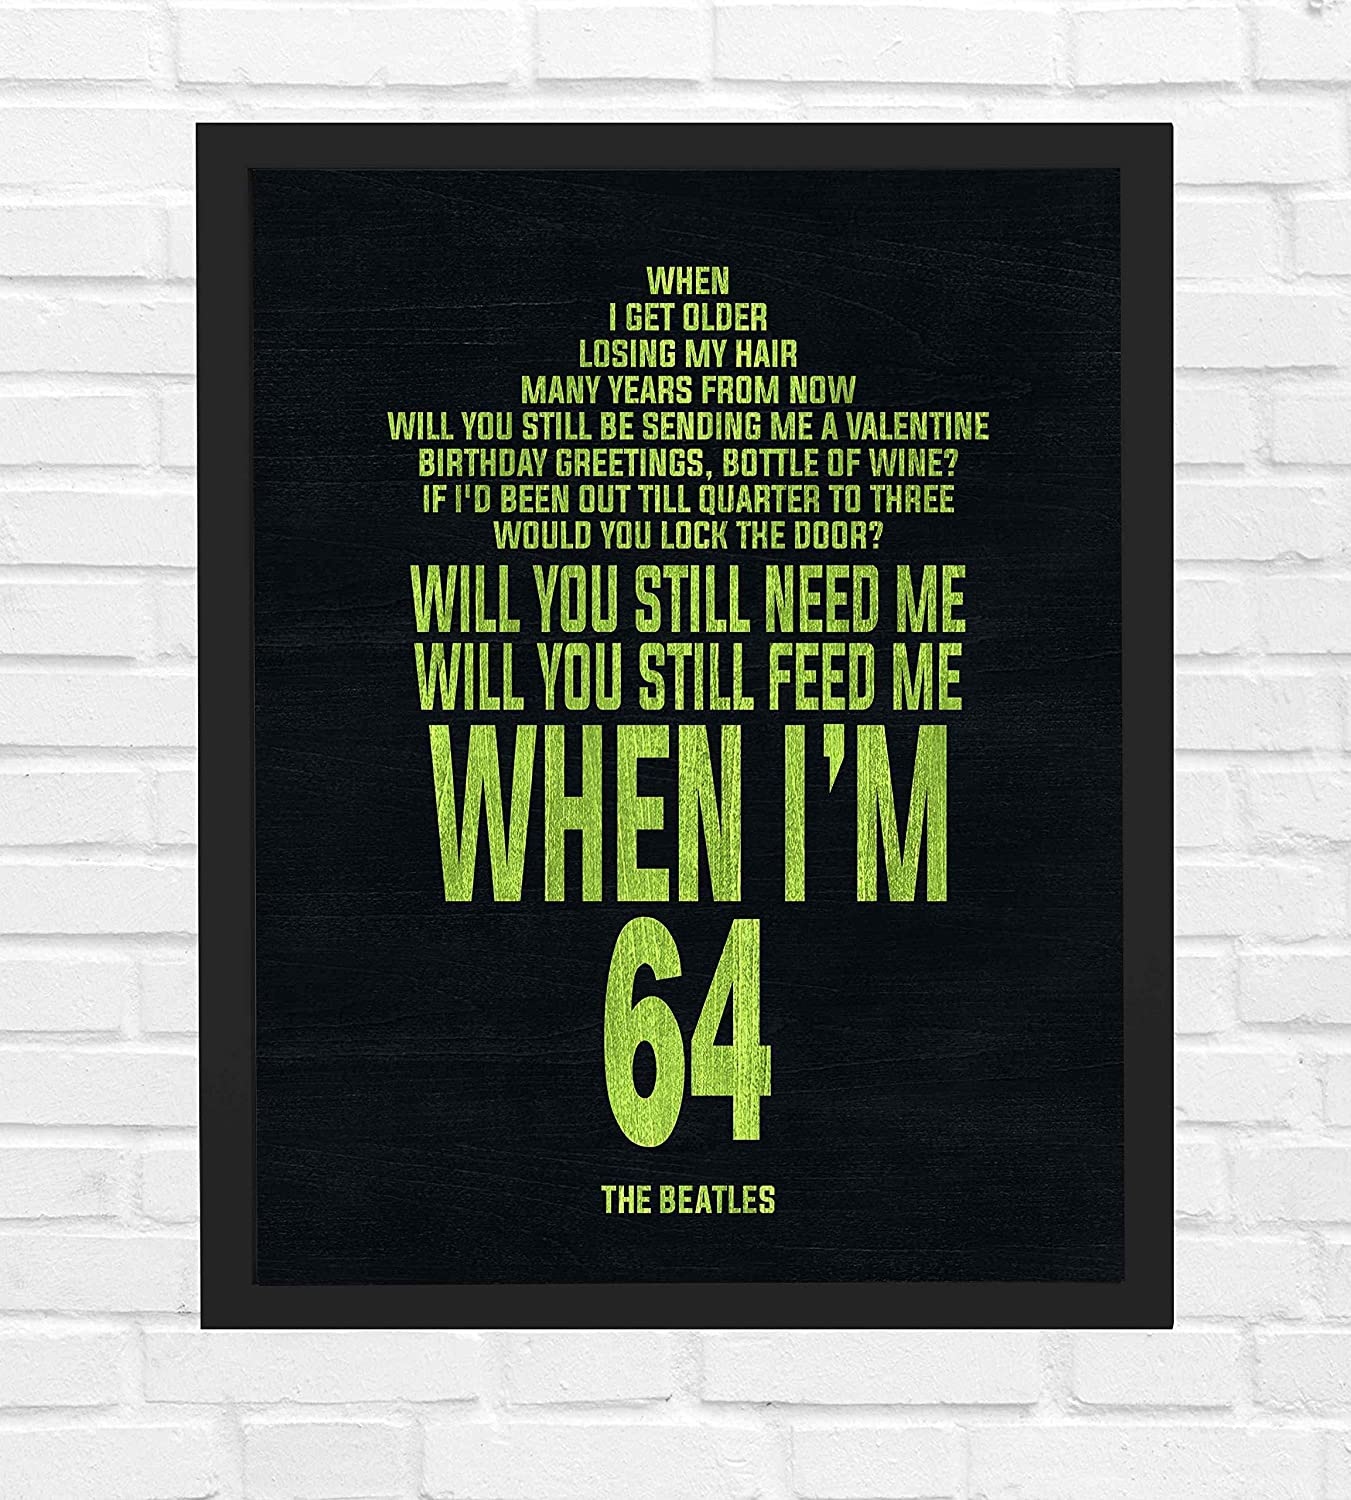 The Beatles When I M 64 Song Lyrics Wall Art 8 X 10 Music Poster Print Ready To Frame Vintage Typographic Sign For Home Office Studio Cave Décor Perfect Love Song Gift For Beatles Fans Handmade